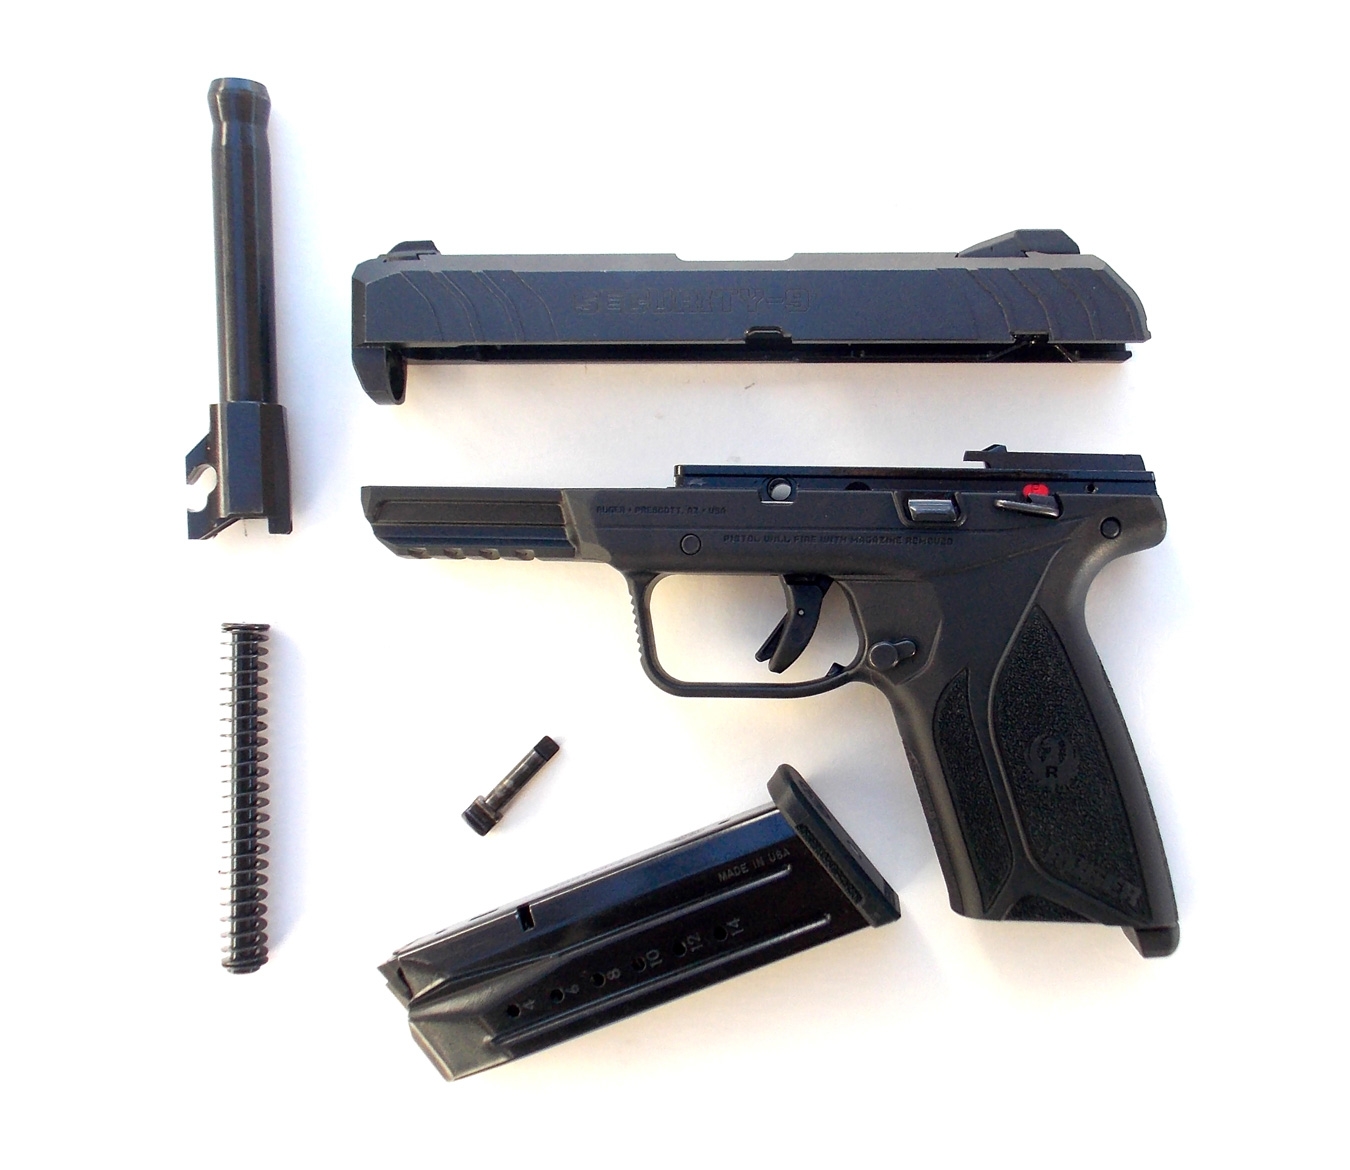 Field stripped Ruger Security-9 pistol